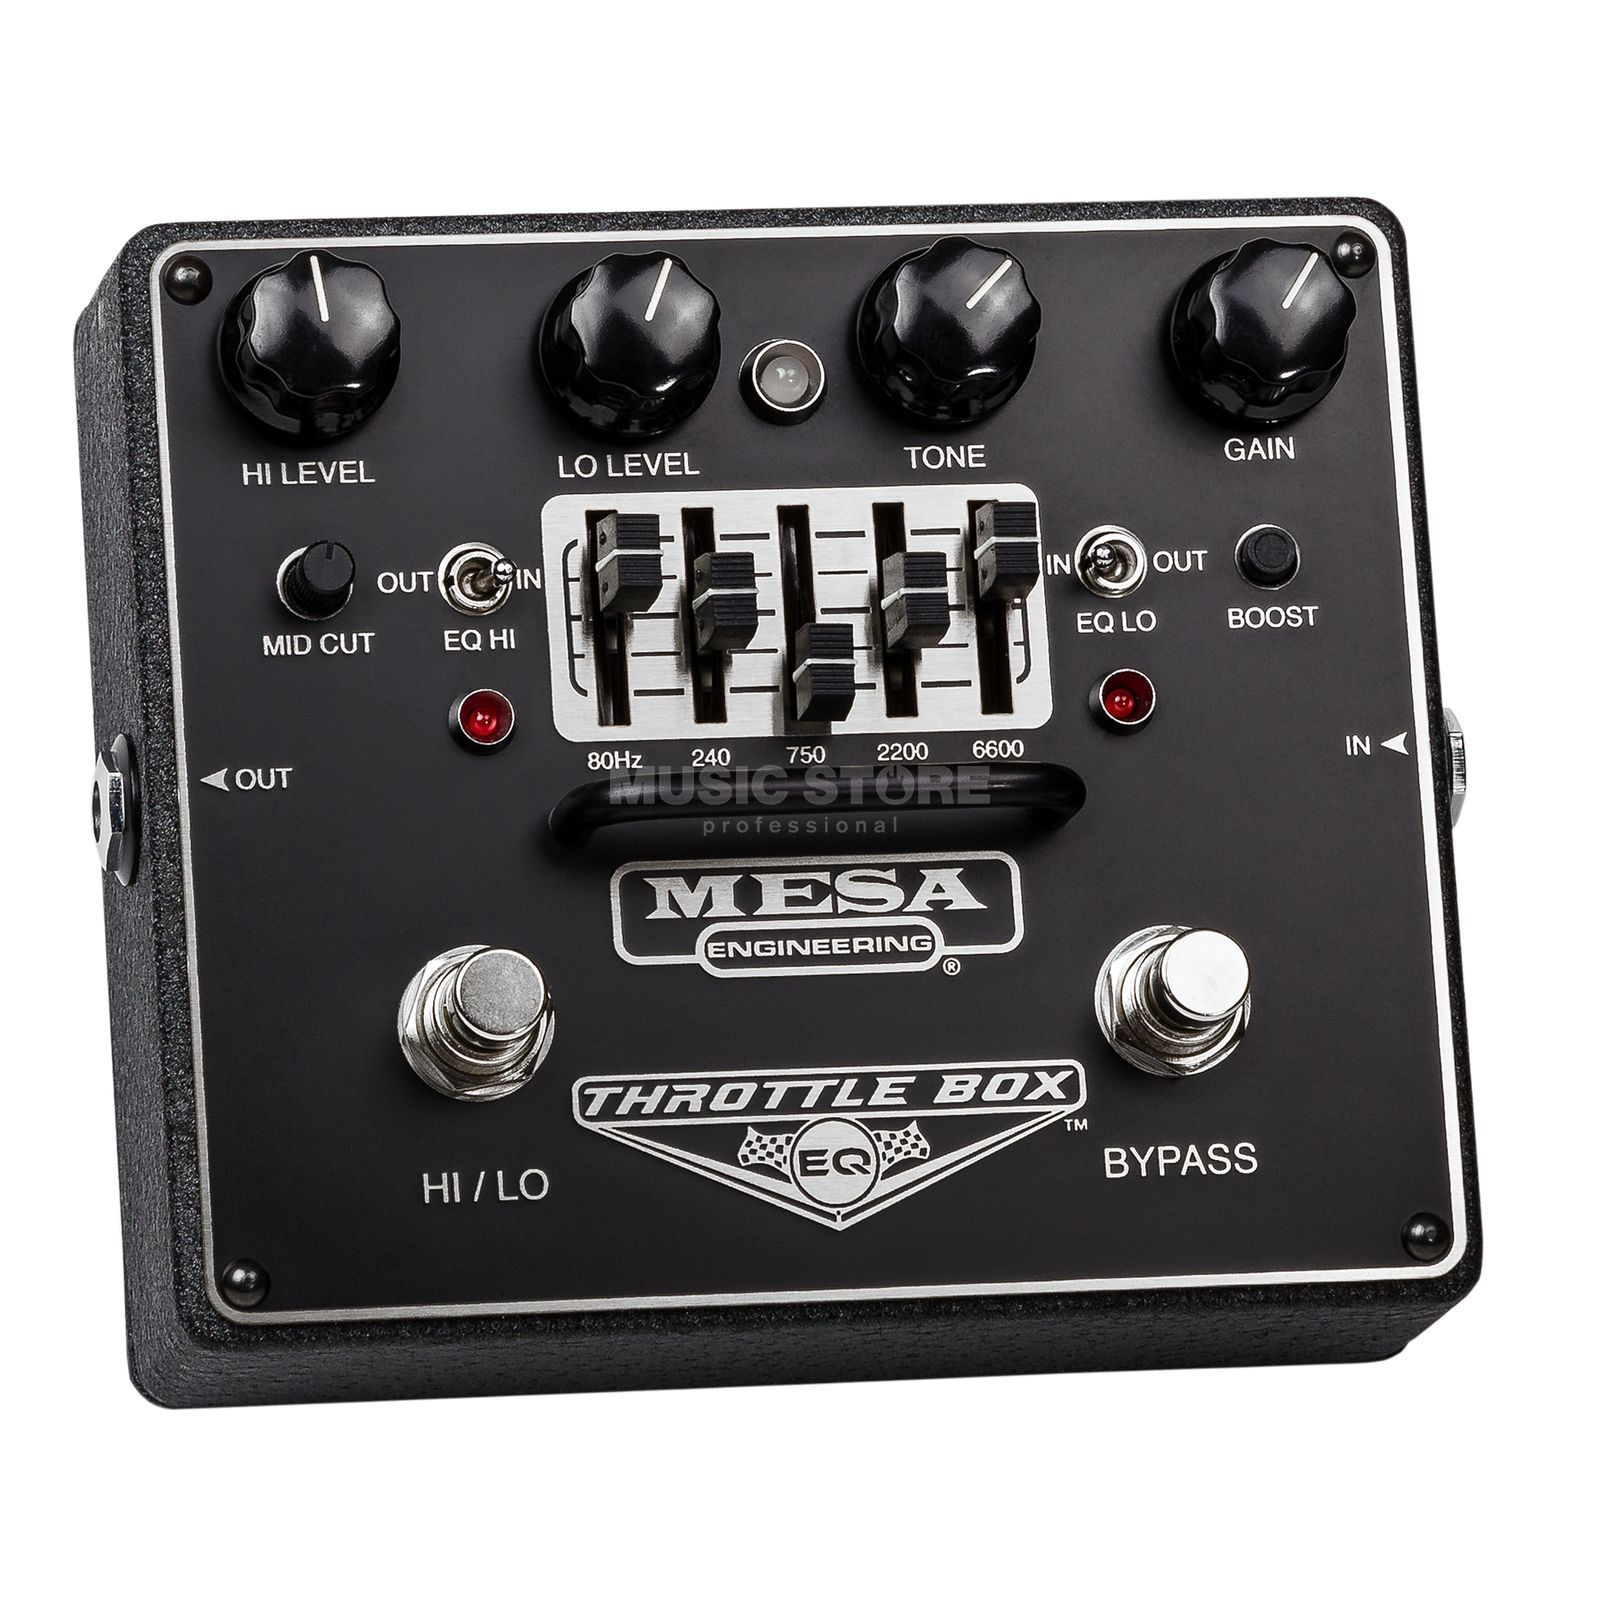 Mesa Boogie Thredtle Box Distortion EQ with 5-Band EQ Produktbillede